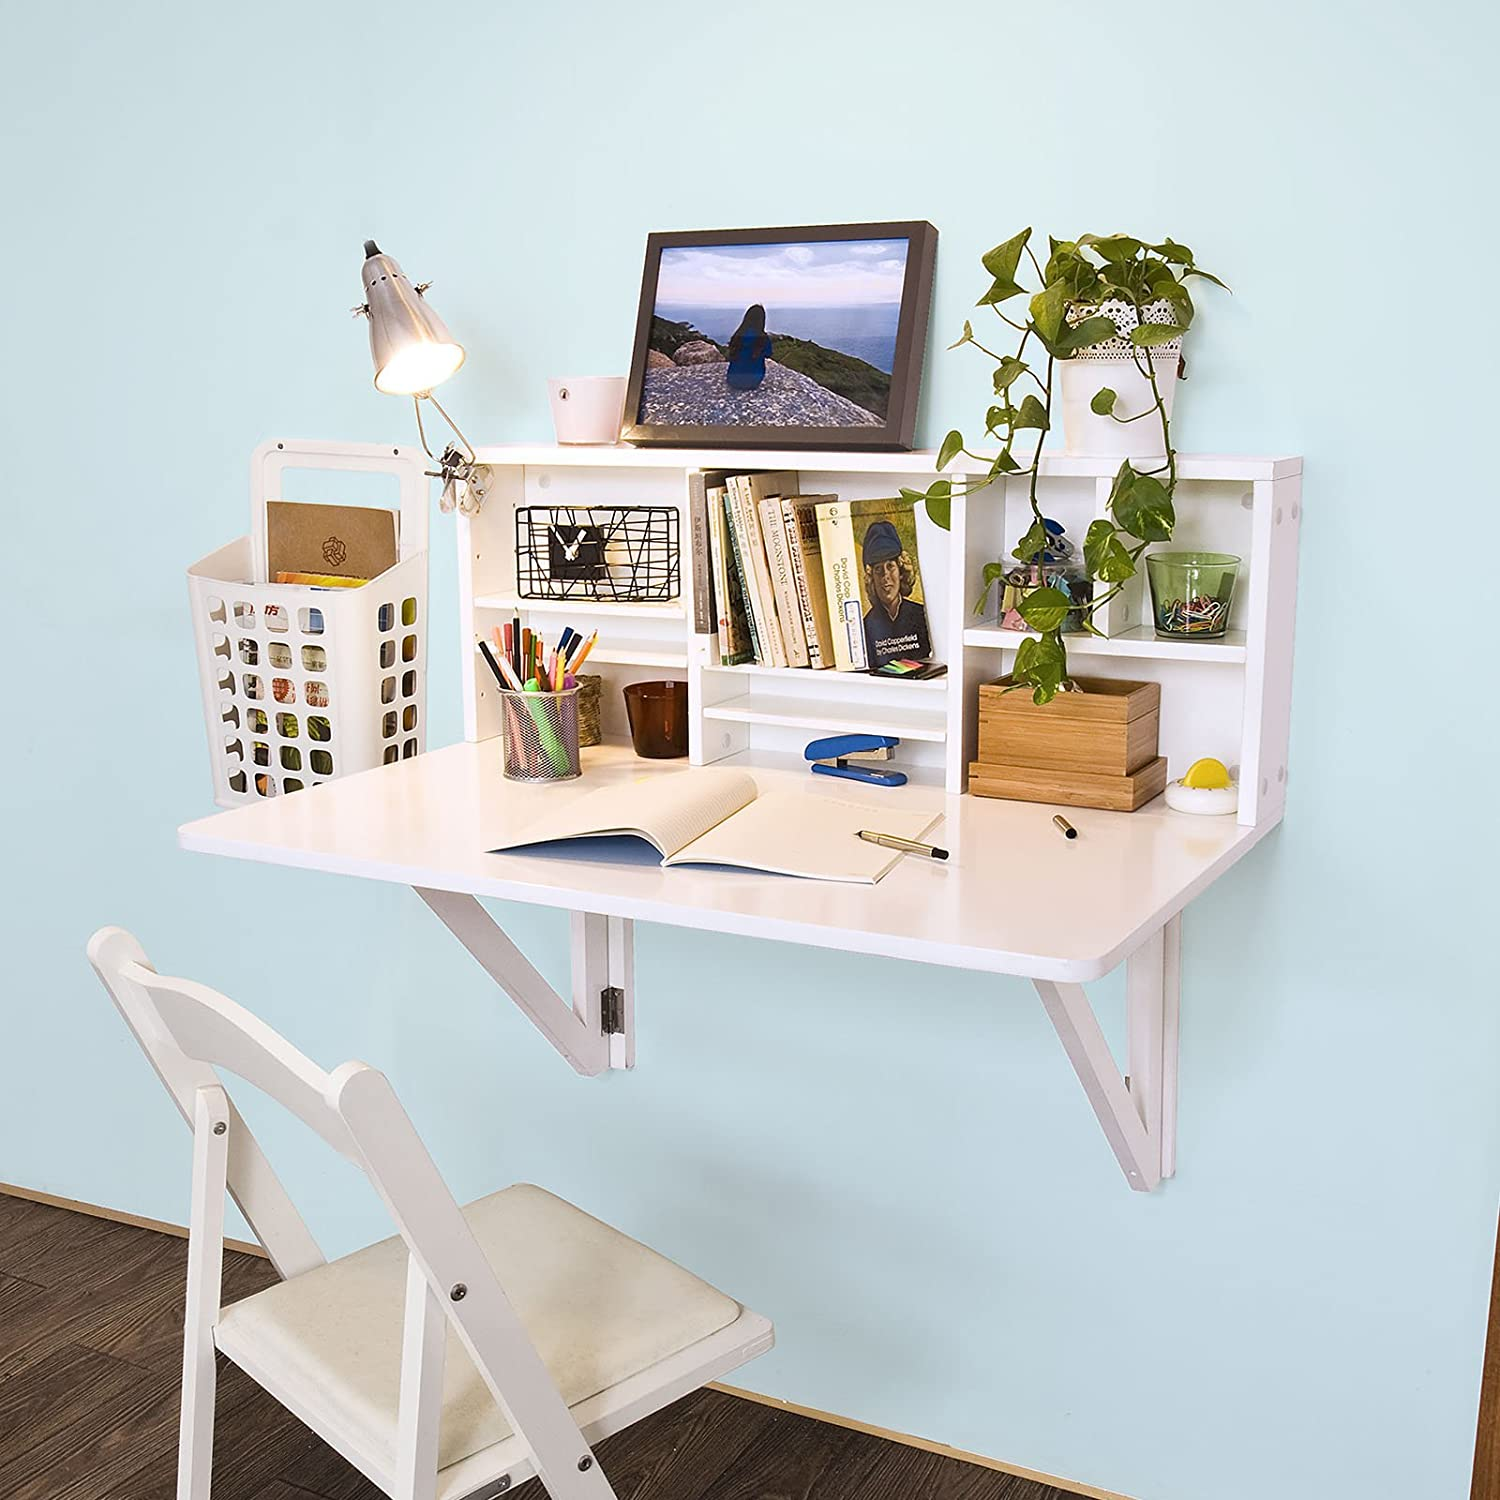 71FUOE9pPGL. AC SL1500  - 15 excellent desk ideas for small spaces